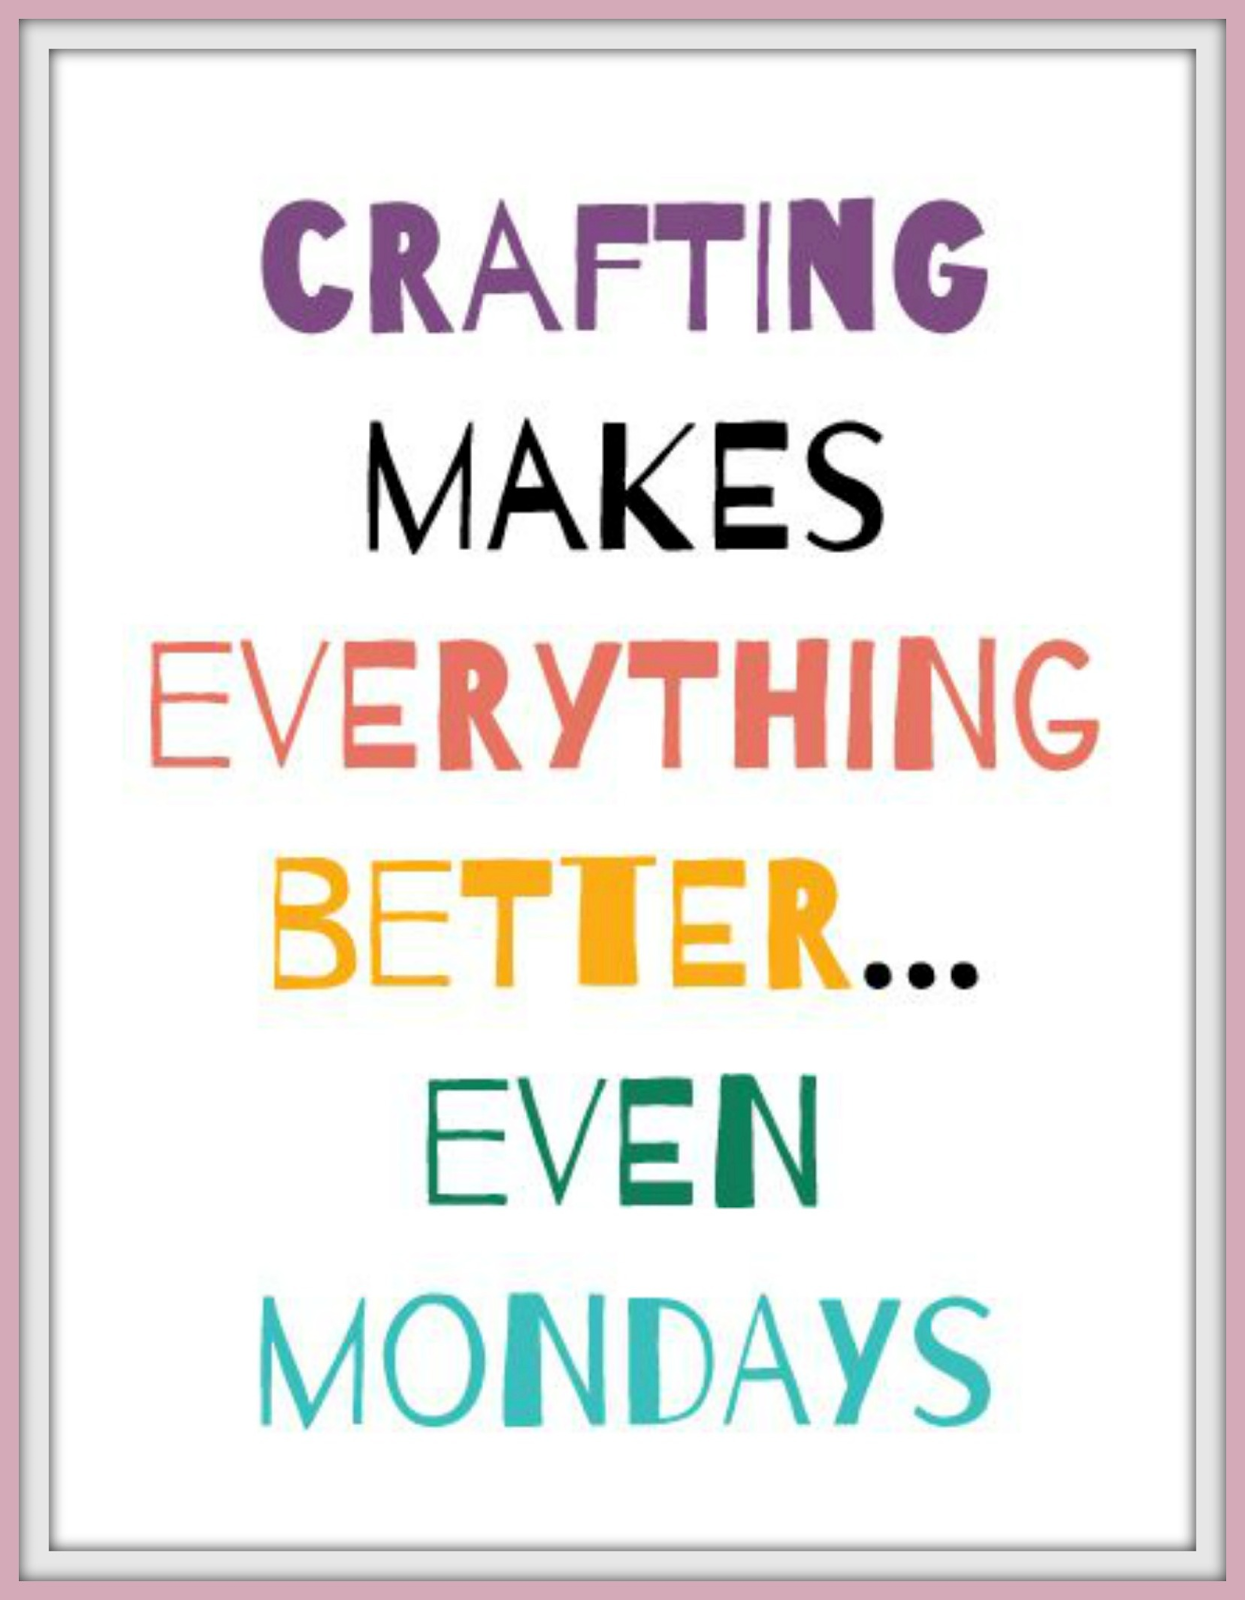 Crafting Quotes Unique Crafting Makes Everything Better Even Mondayscraft To Improve .